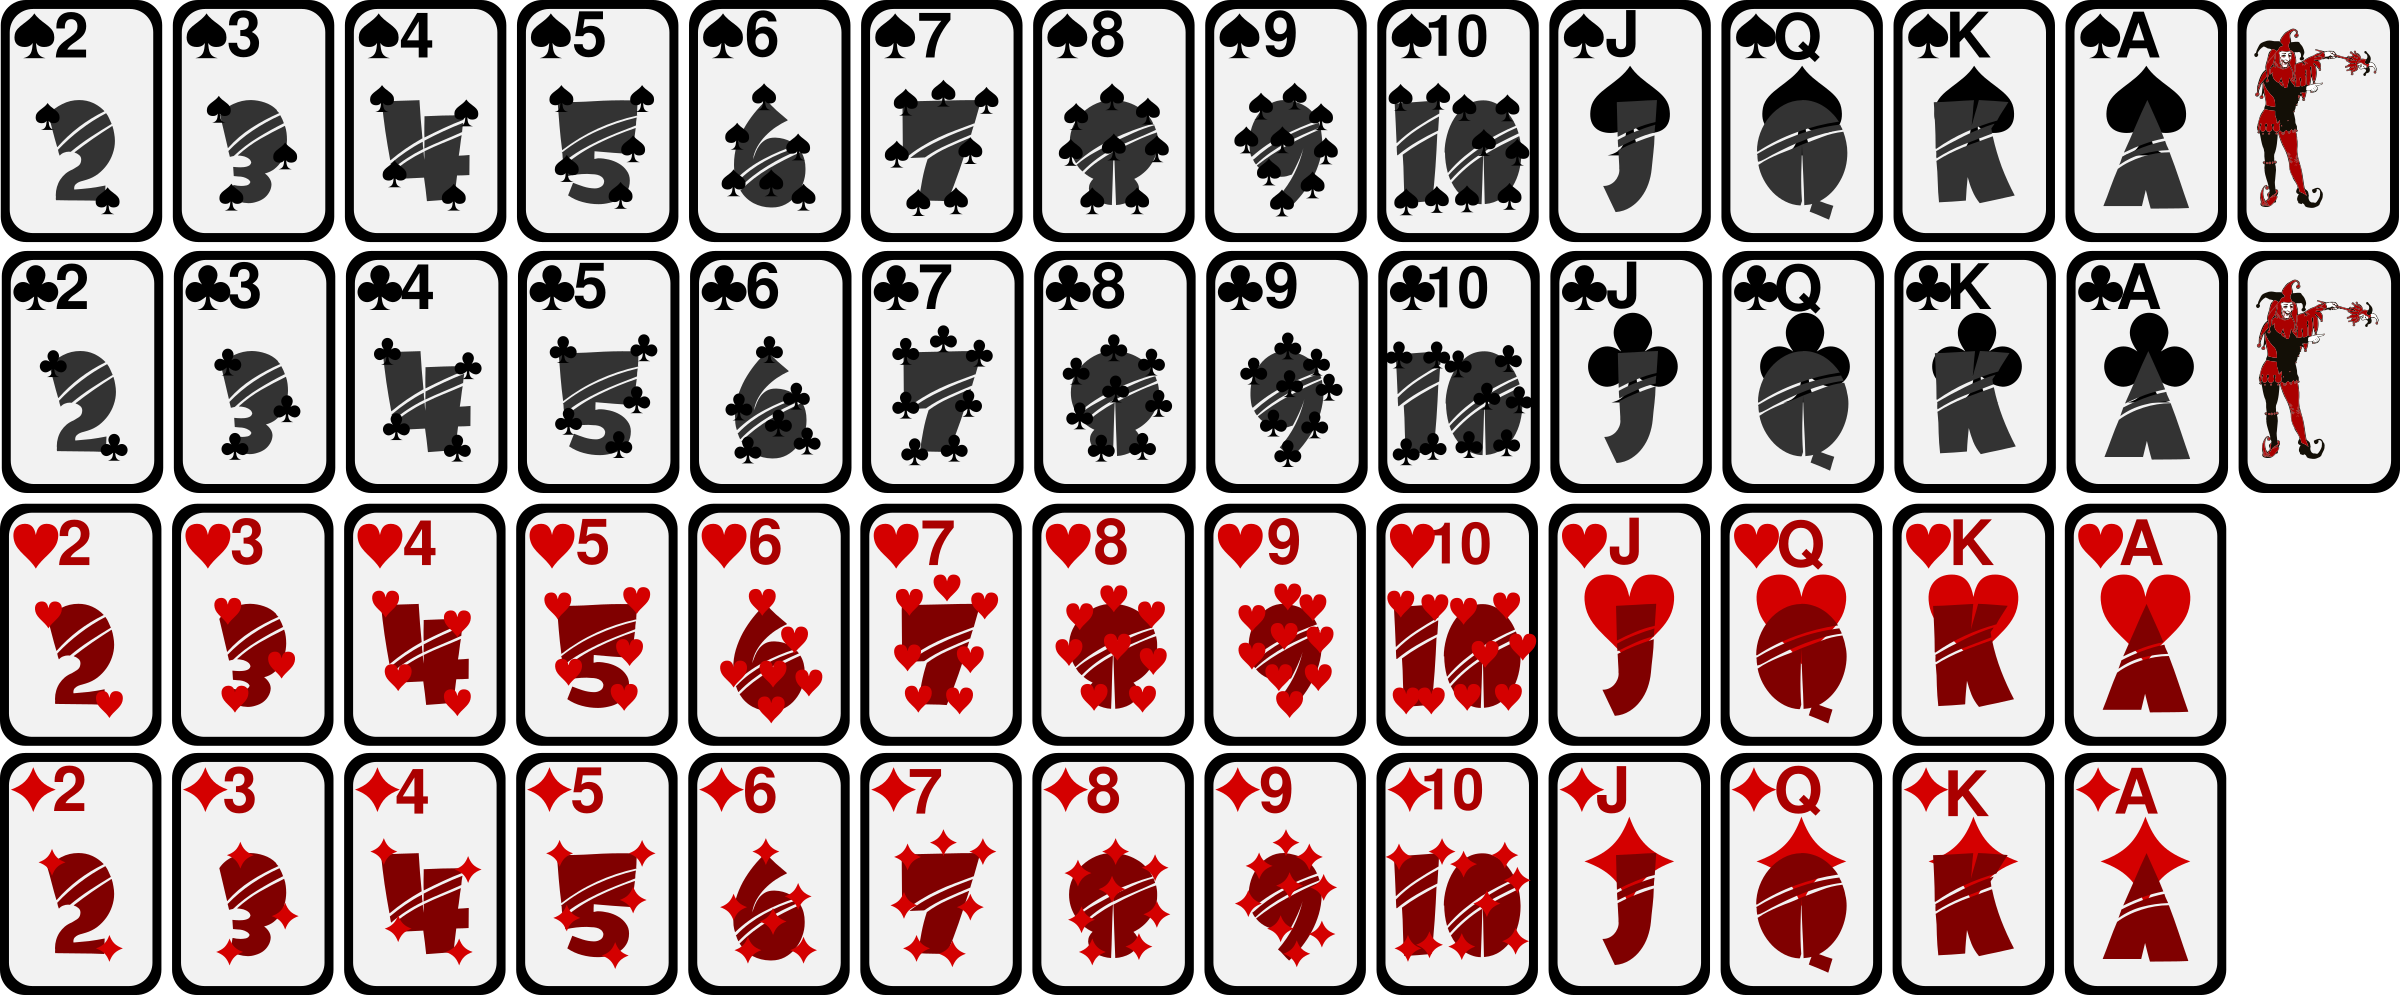 Game clipart deck card. Of playing cards big